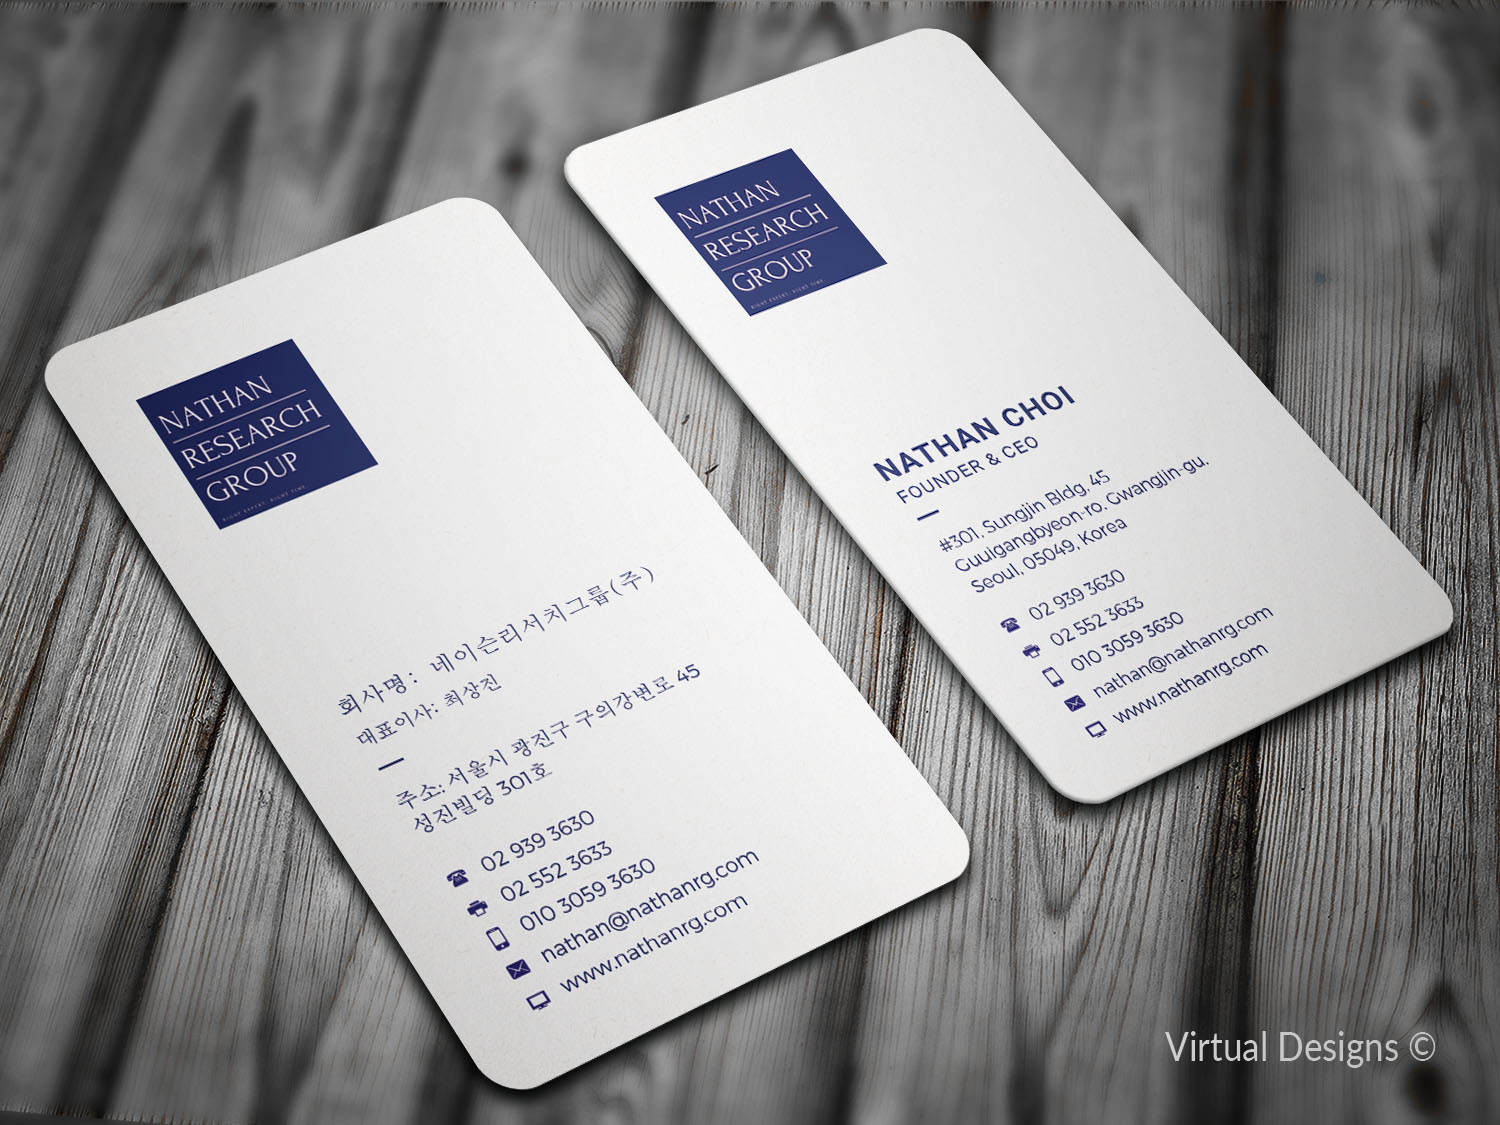 Elegant playful recruitment business card design for nathan business card design by virtual designs for nathan research group inc design reheart Images